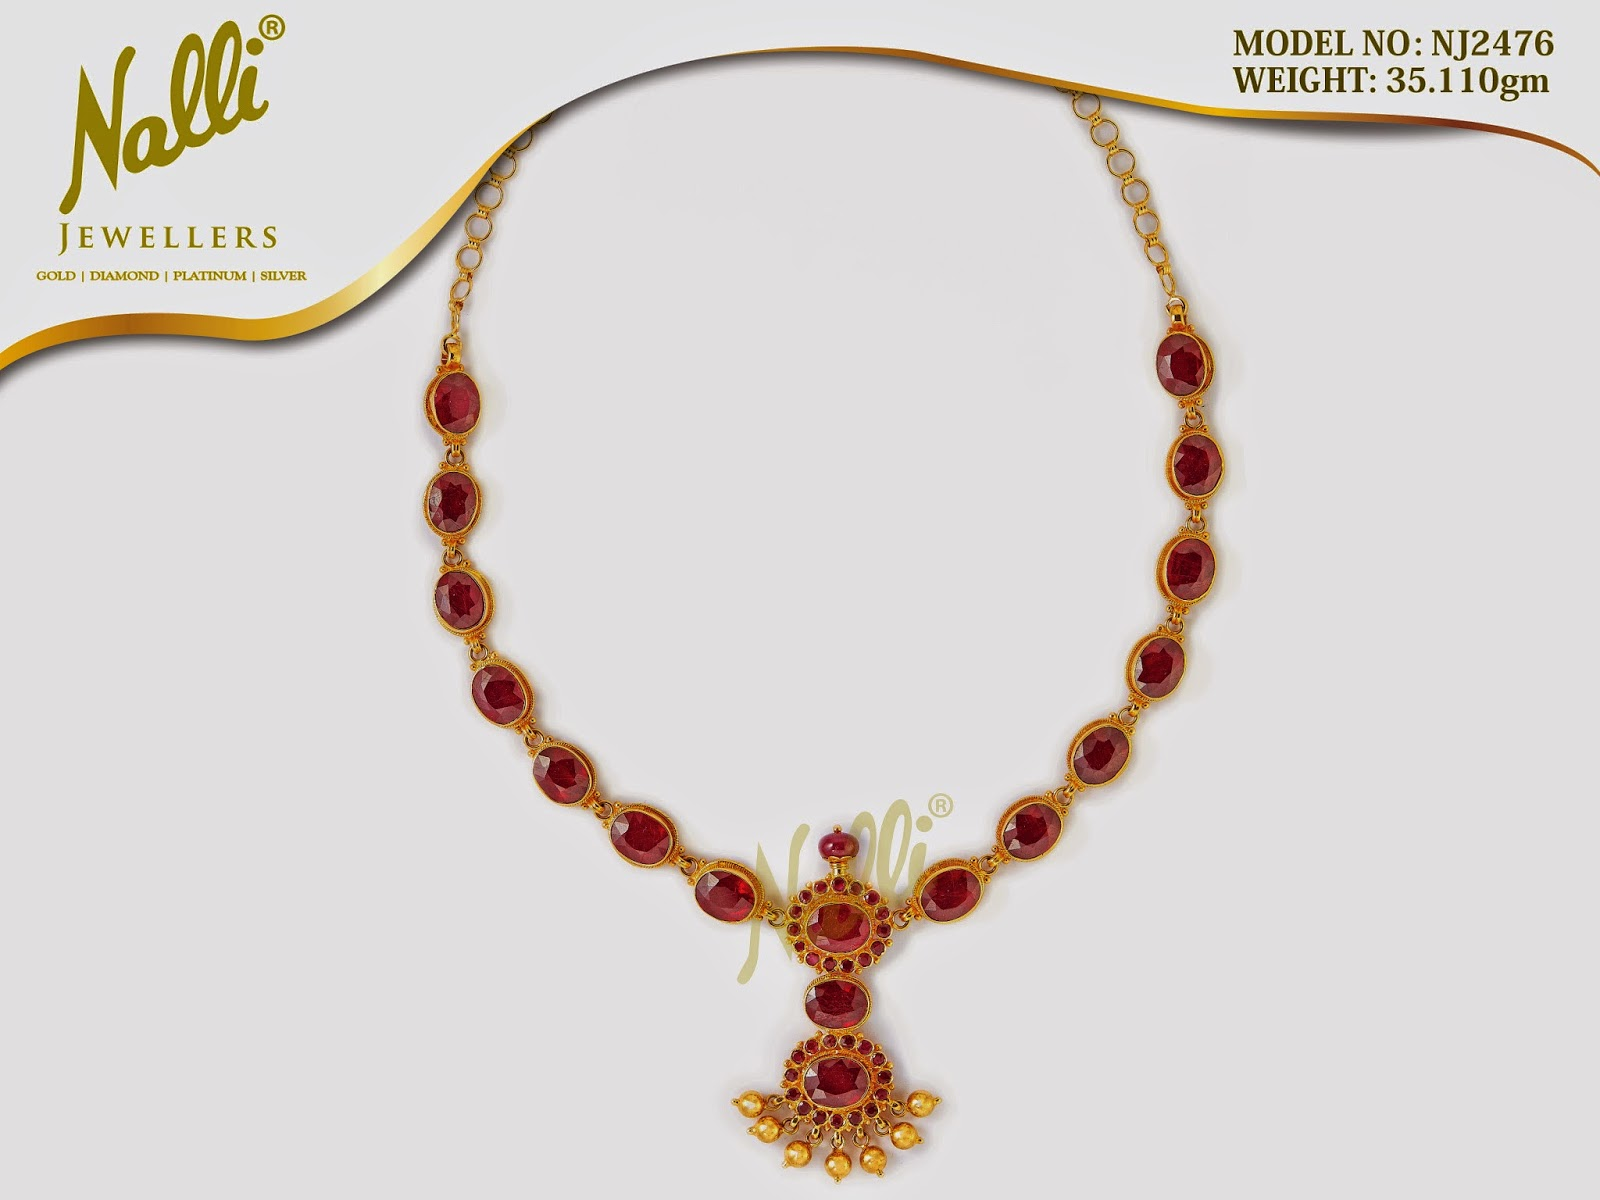 Latest Nalli Jewellers Necklace Collections